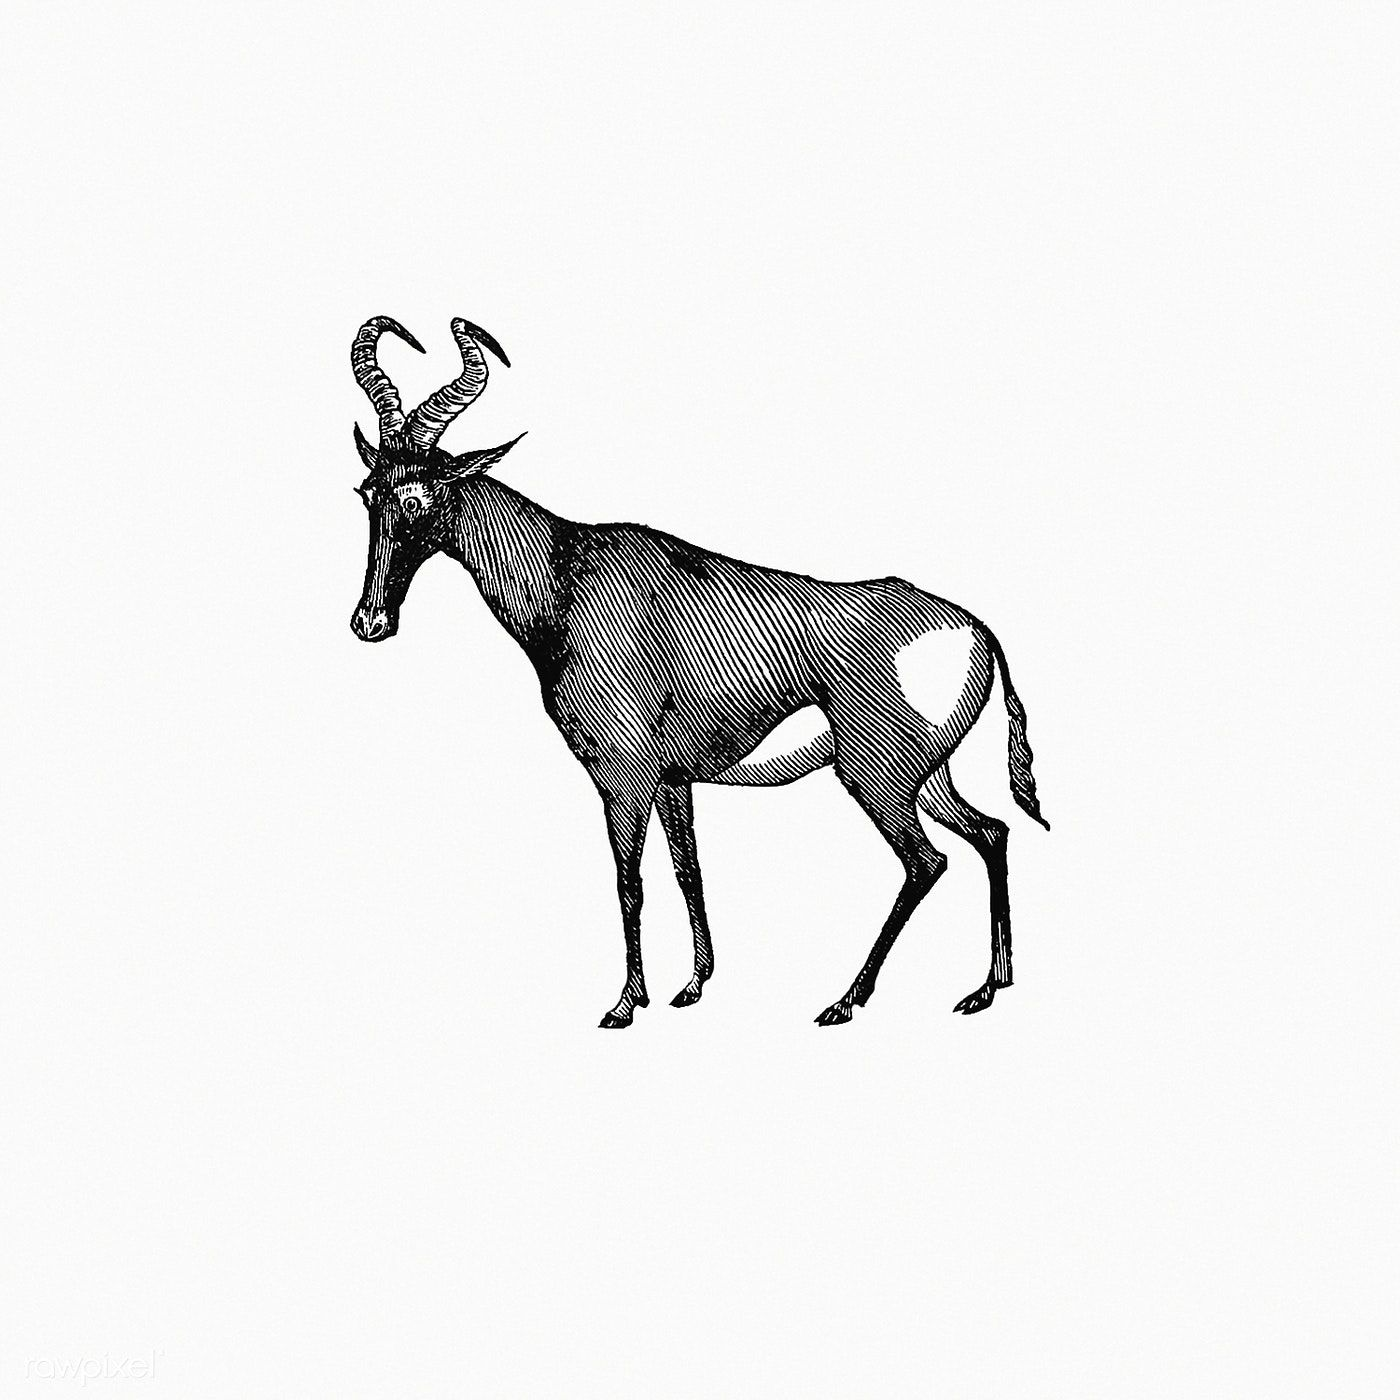 Hartebeest from Adventures in the far interior of South